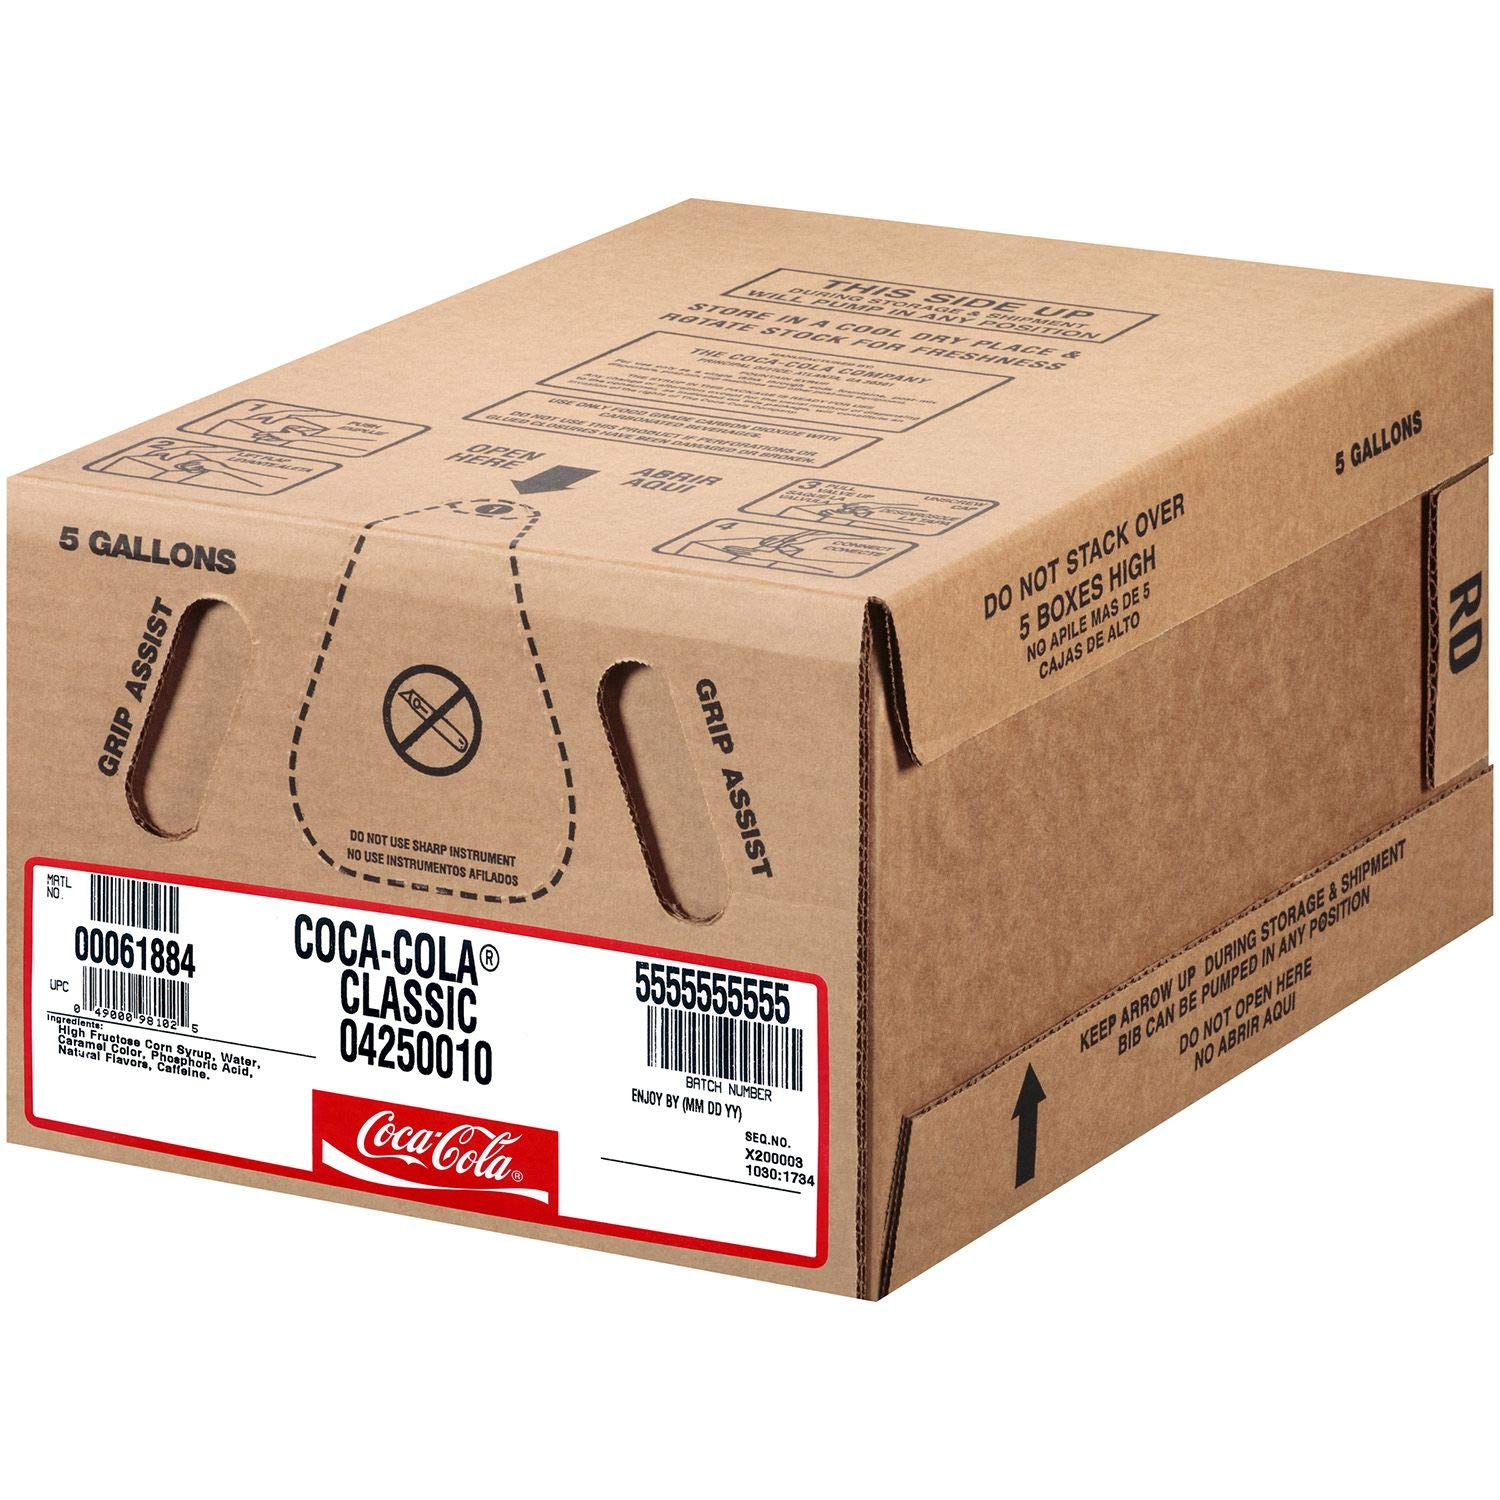 Coca-Cola Bag-In Box Fountain Syrup 5gal. (pack of 4) A1 by Store-383 (Image #1)